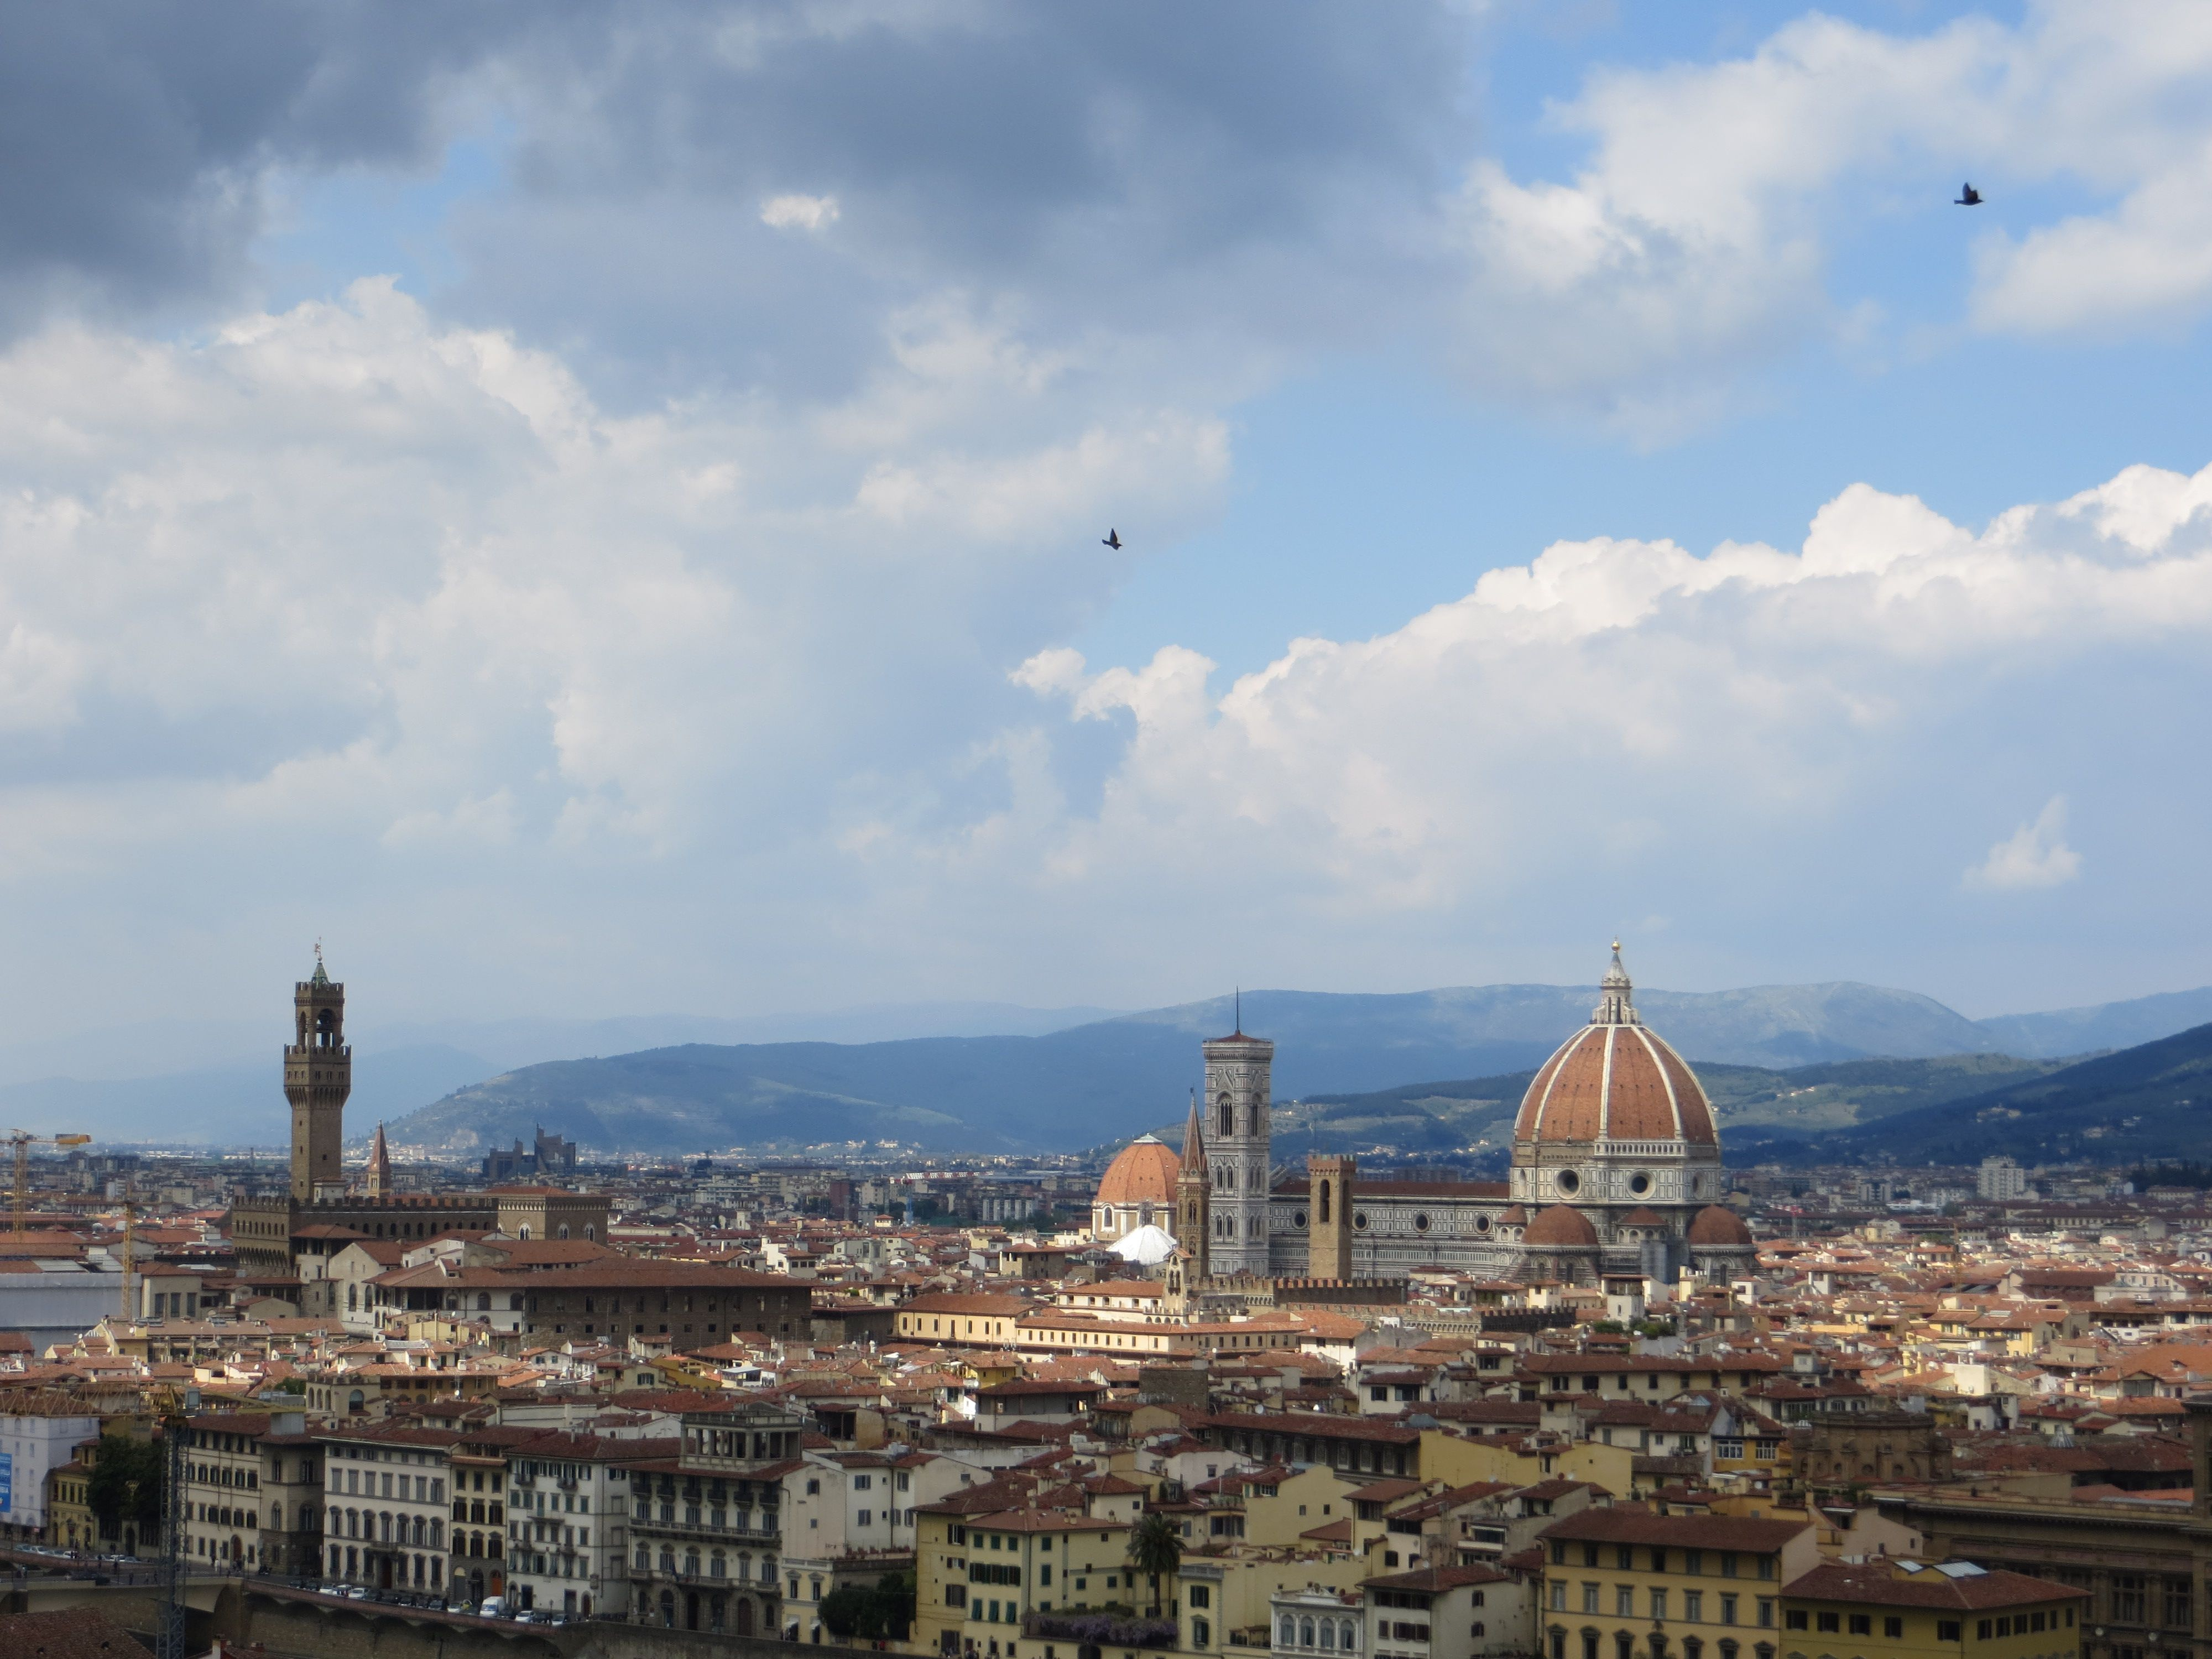 Florence!! What a beaut